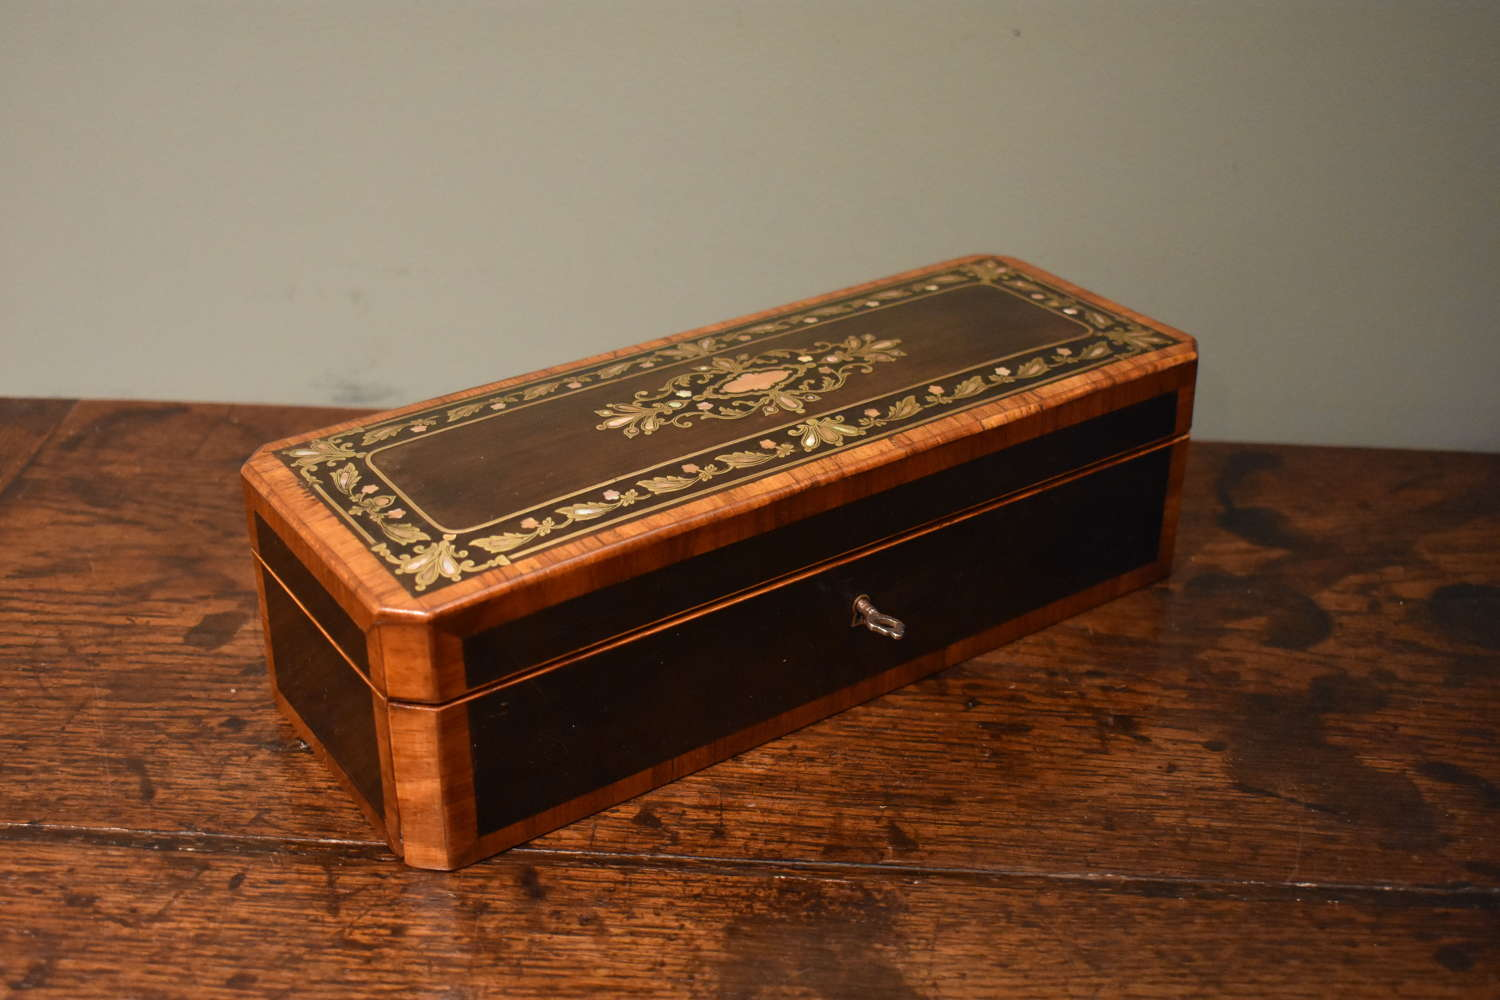 19th c. French glove box